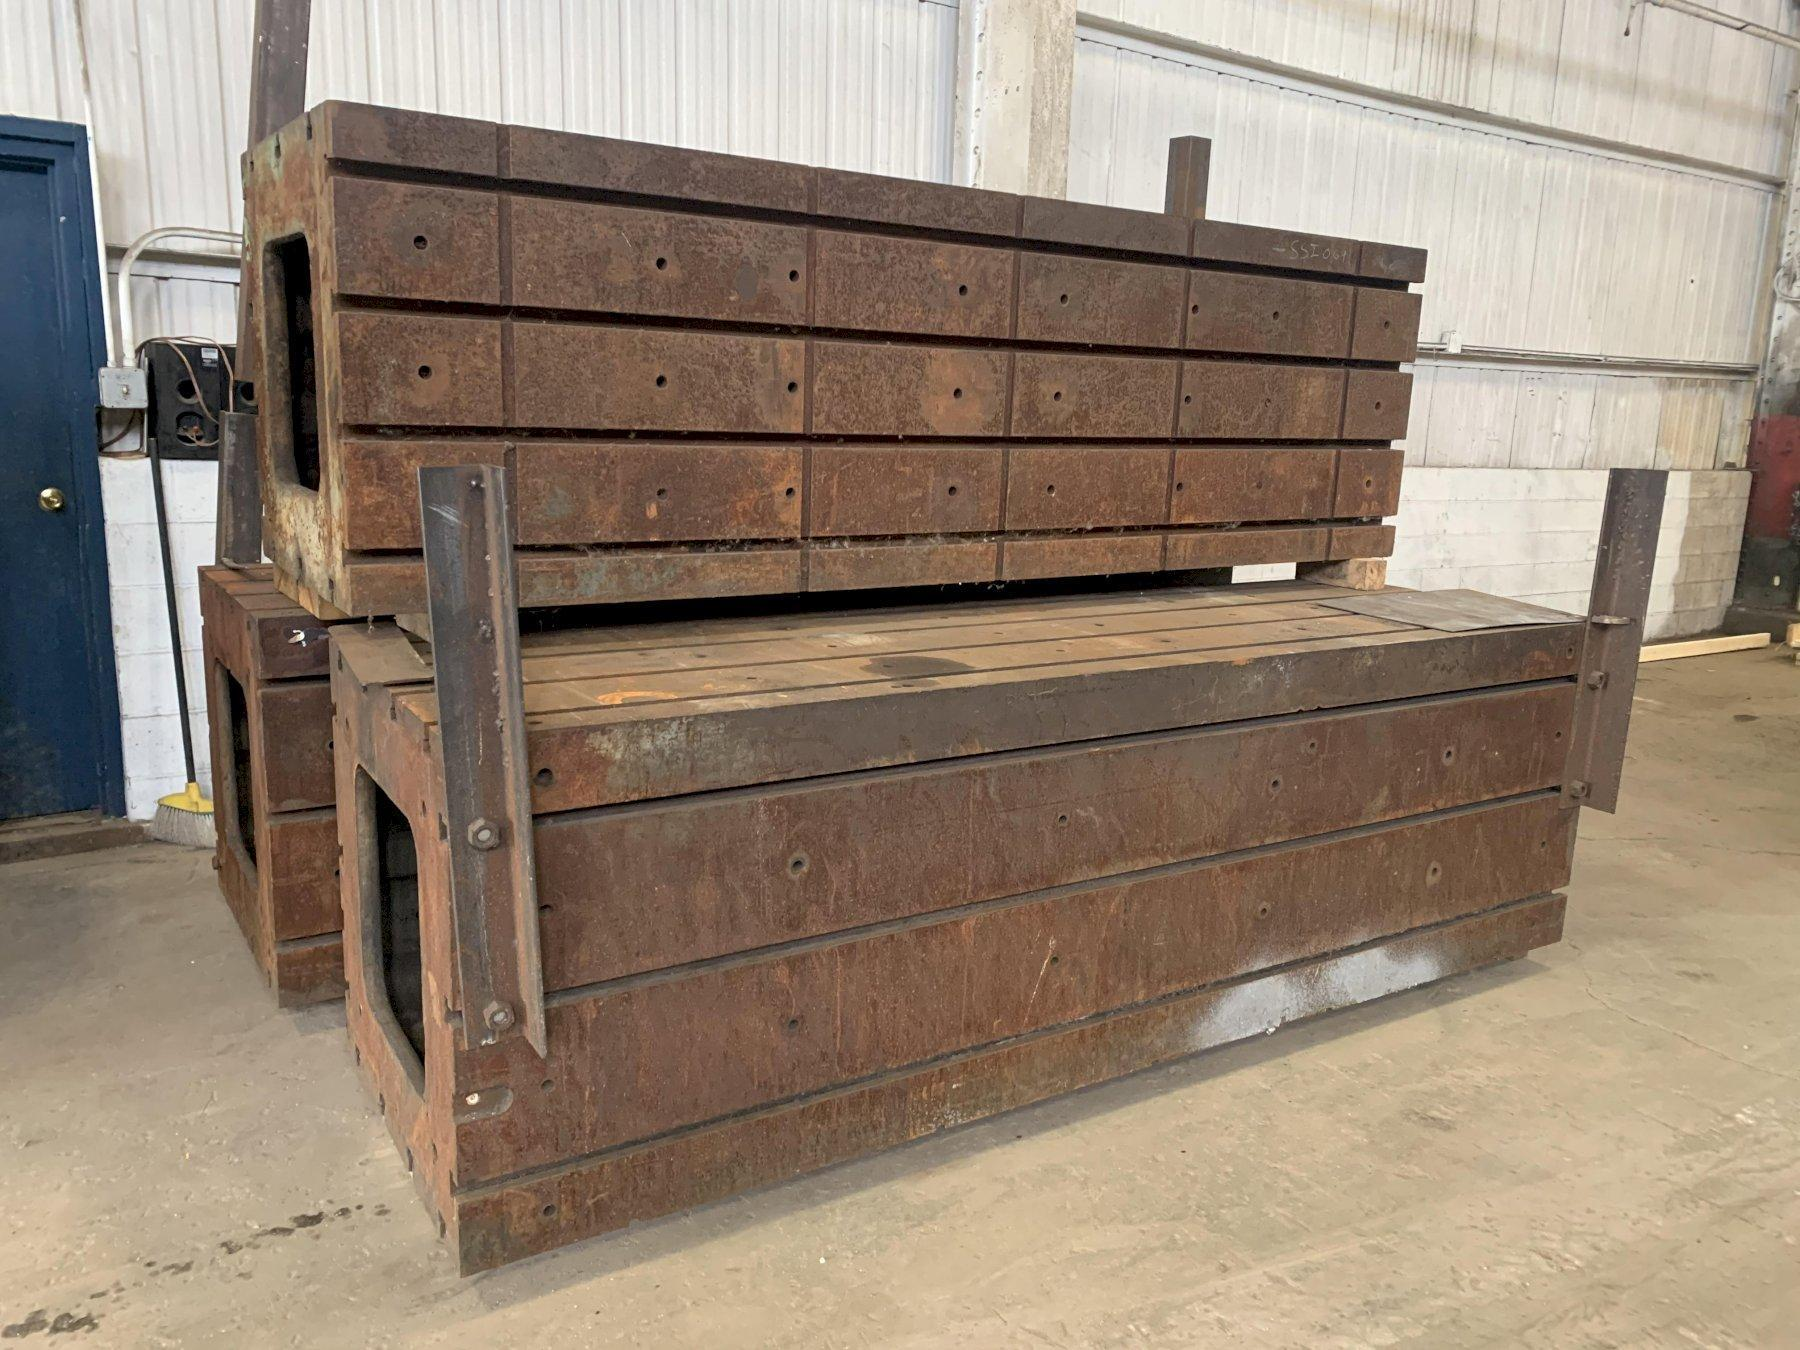 """120"""" X 36"""" X 36"""" HIGH T-SLOTTED HEAVY DUTY TABLE / RISER: STOCK #12305"""